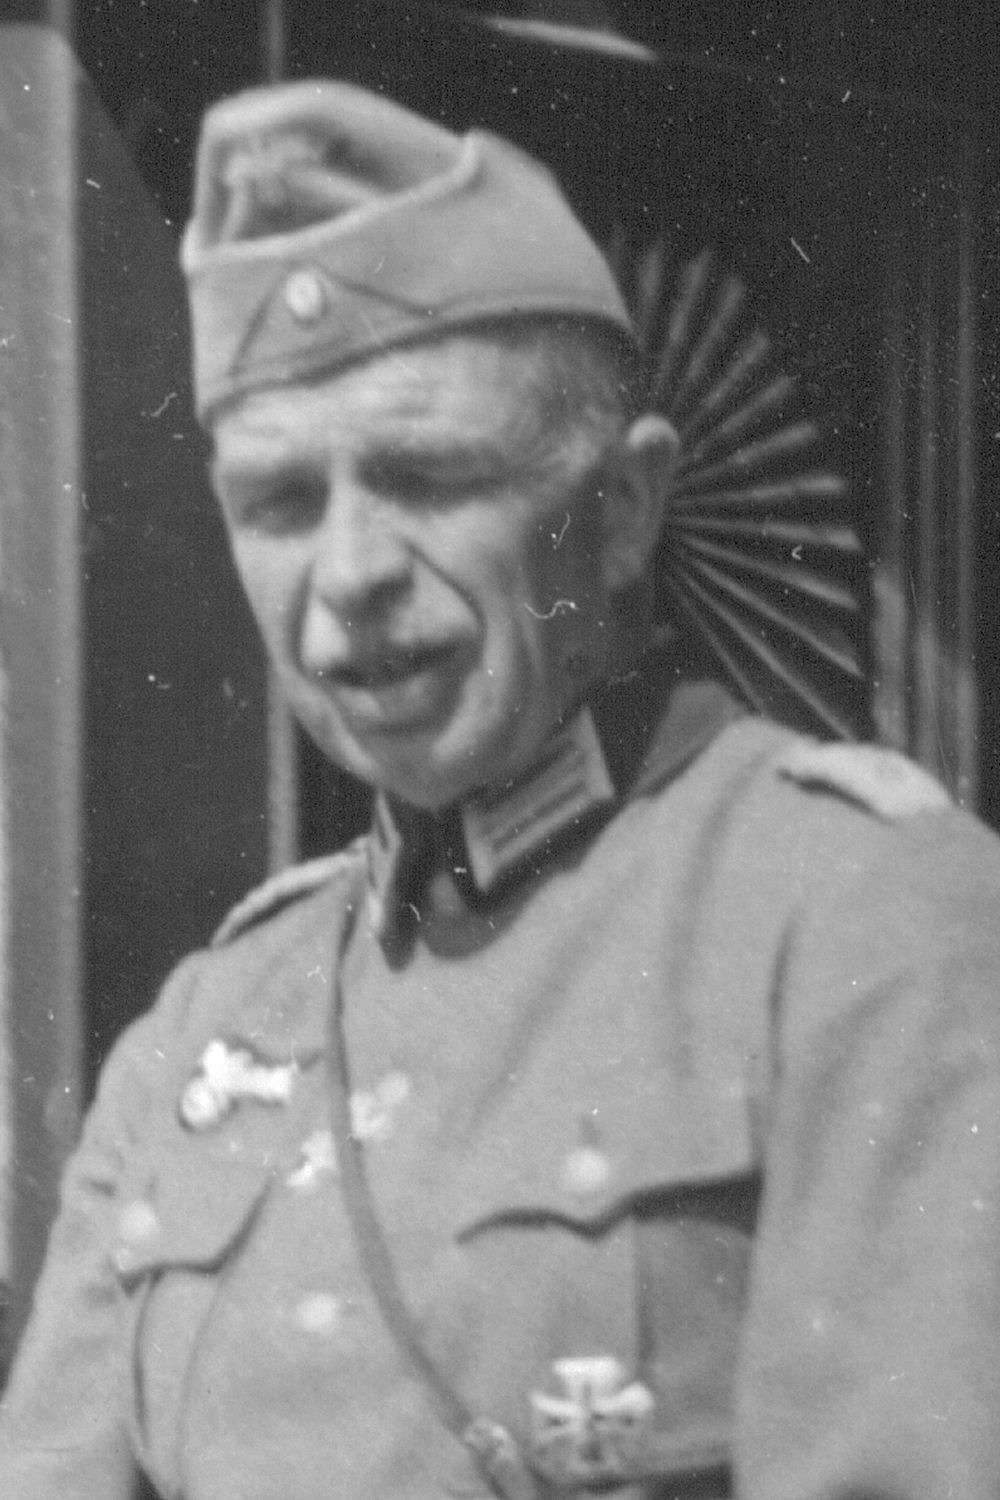 Münchmeyer Otto